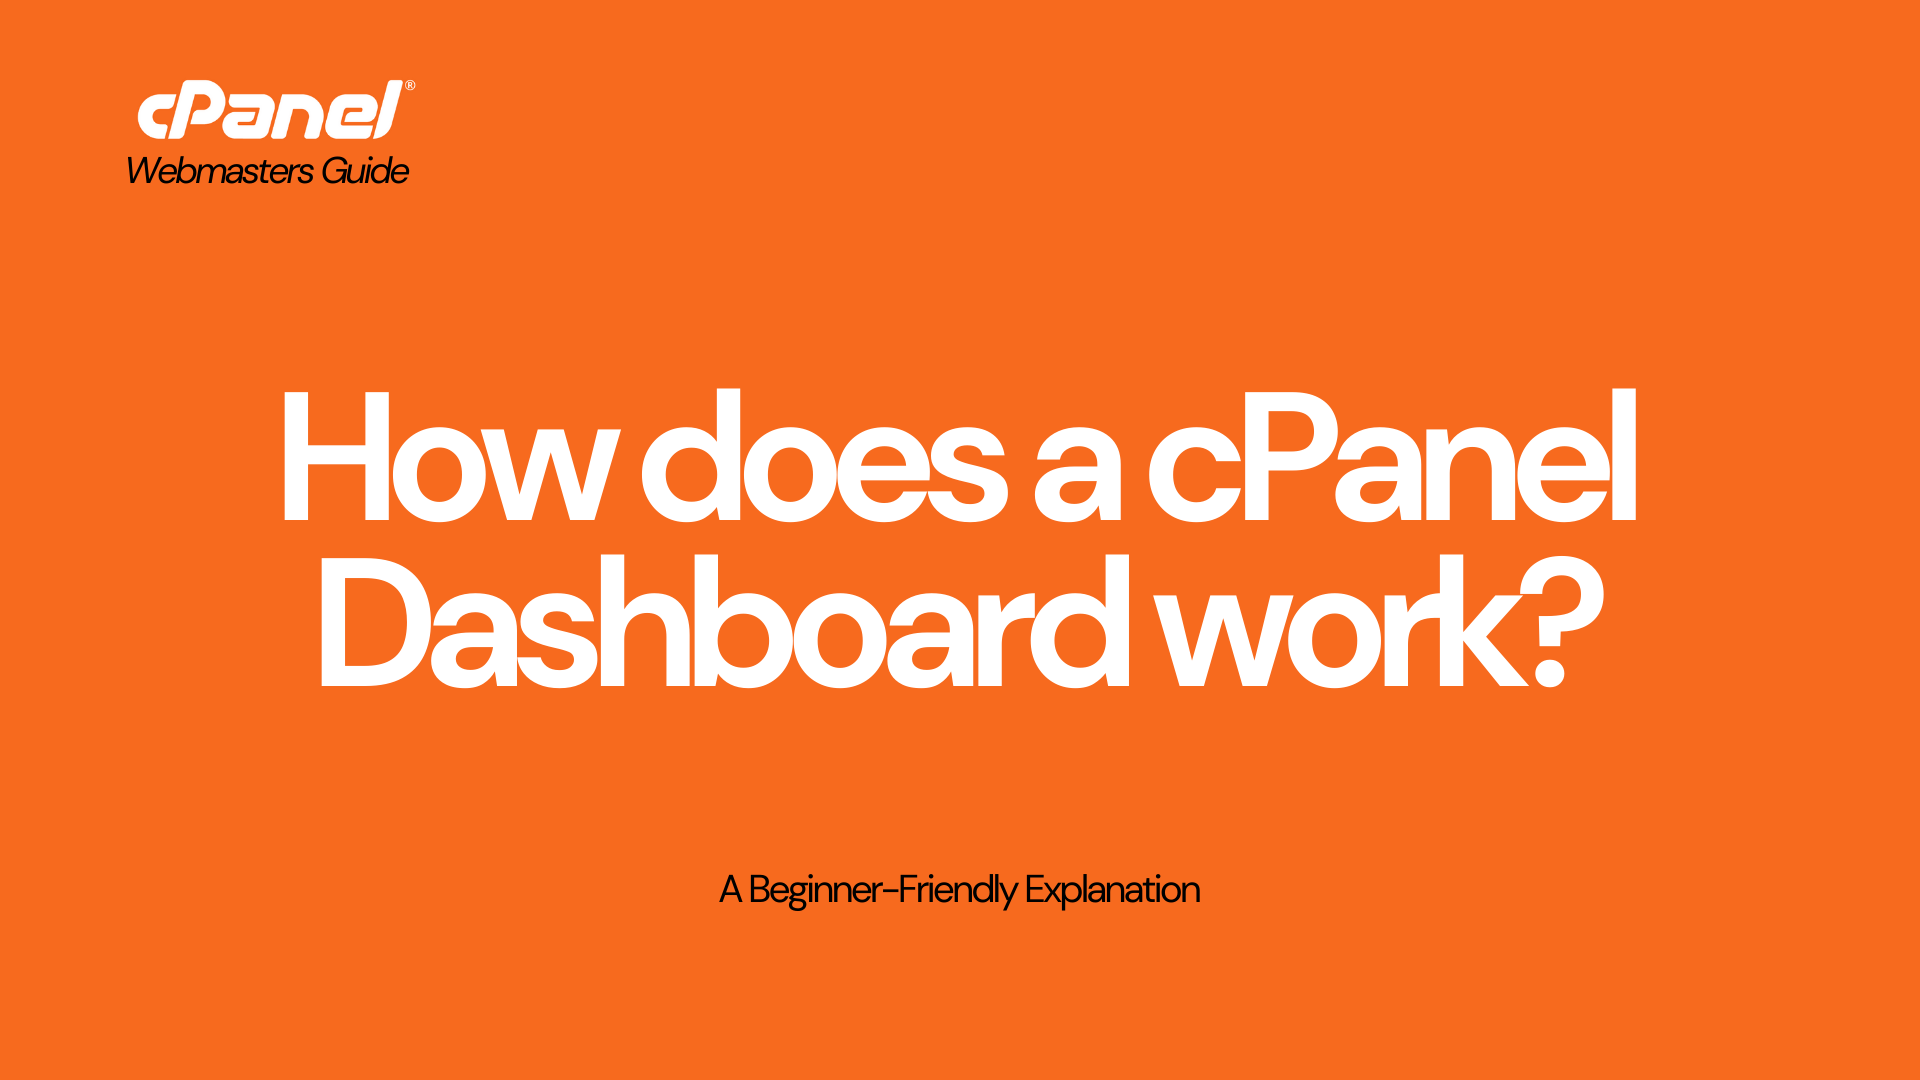 What is a cPanel Dashboard?